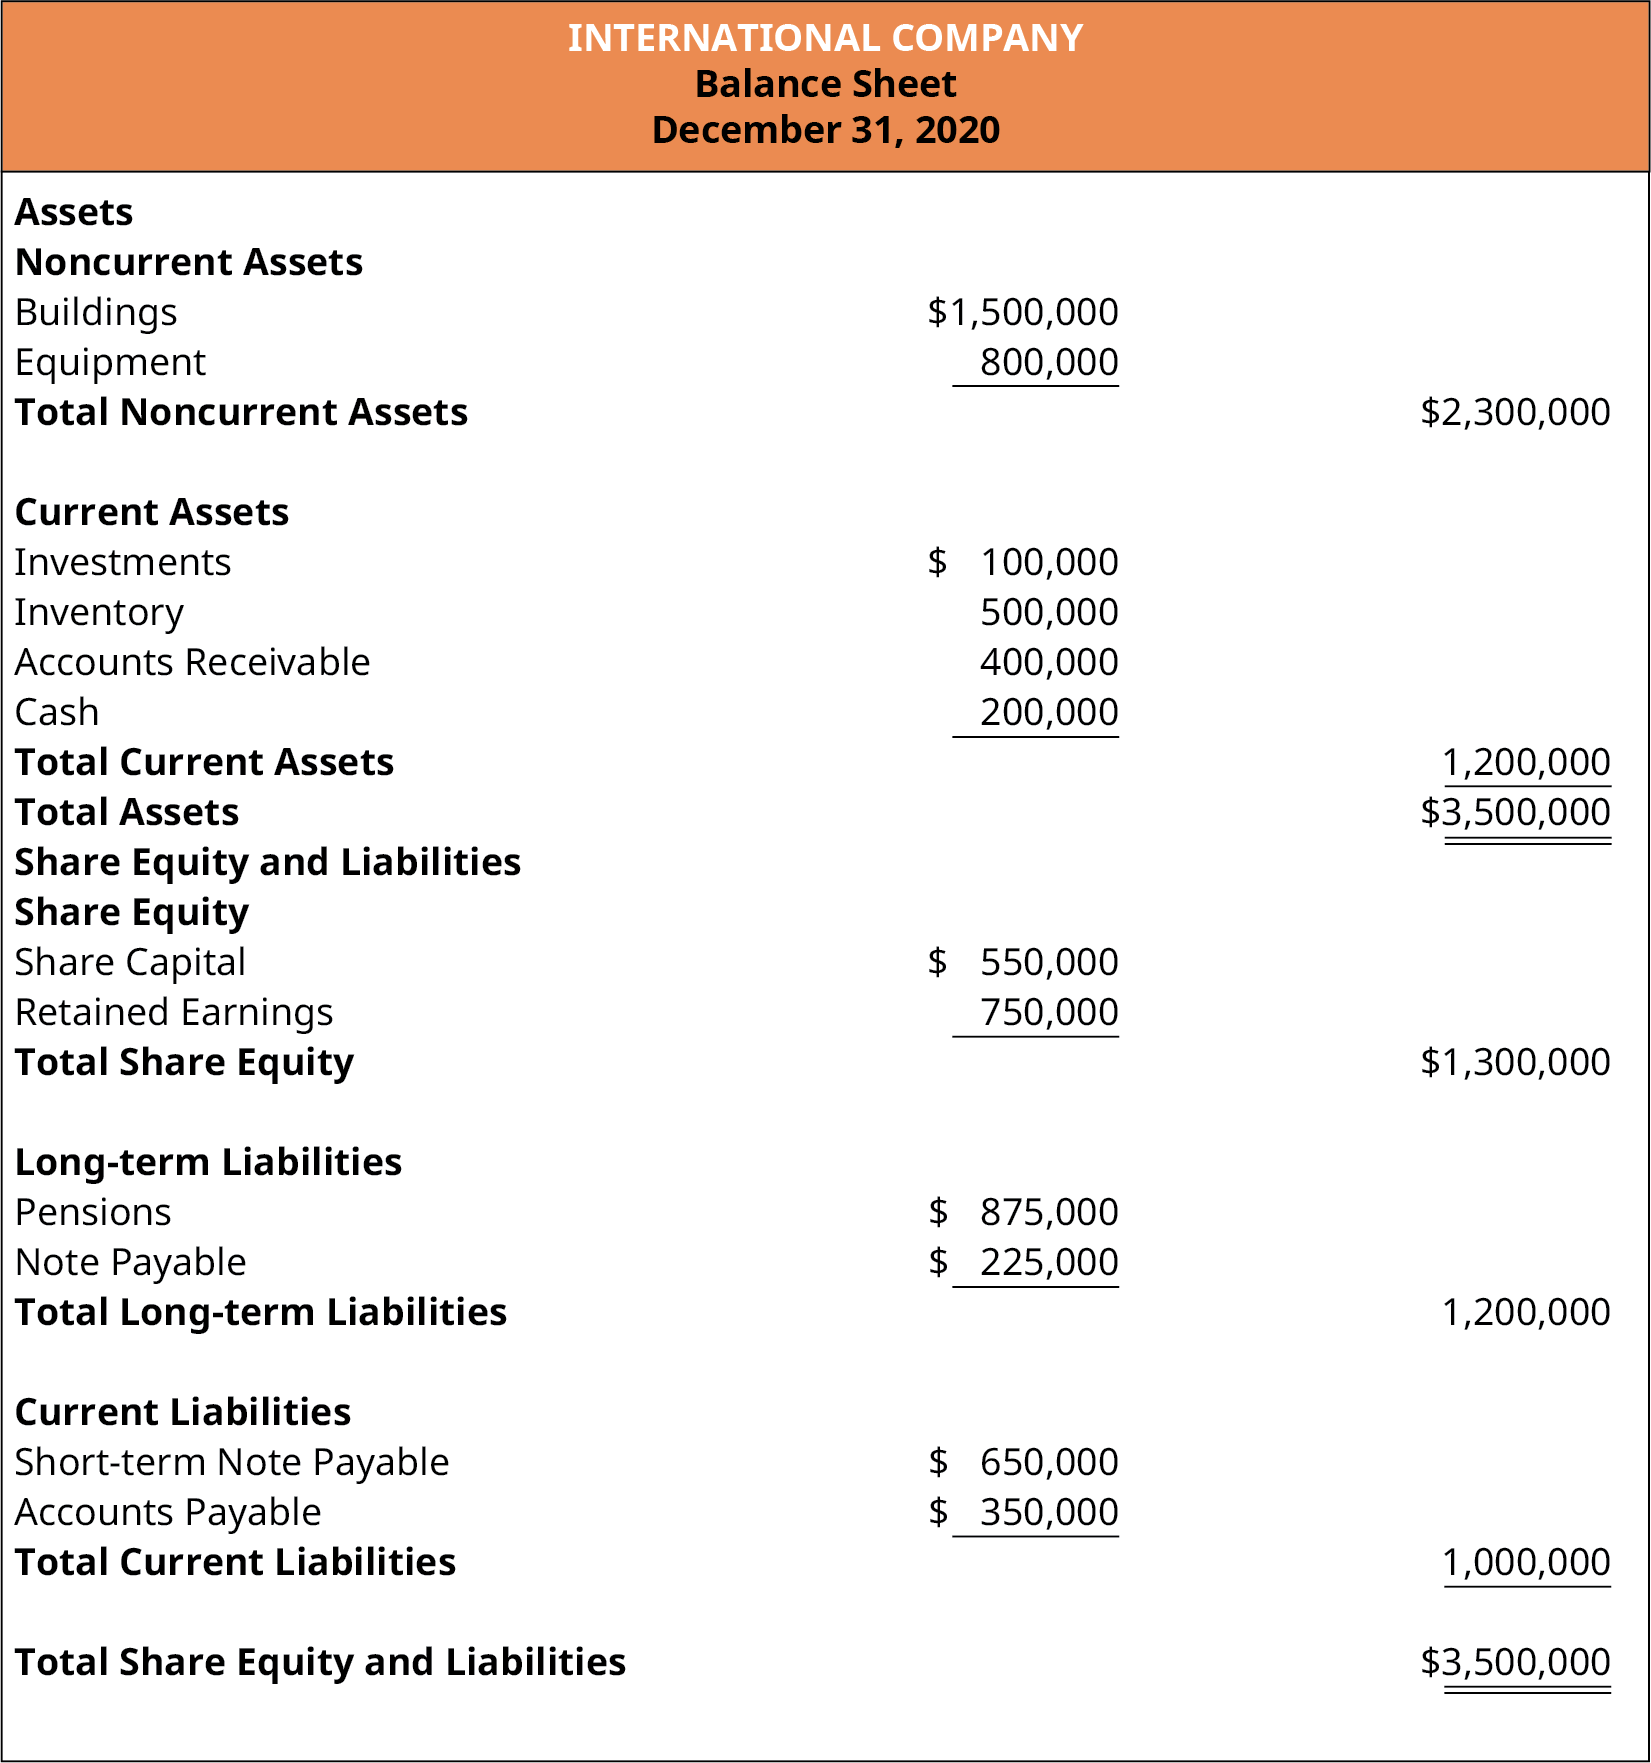 International Company, Balance Sheet, December 31, 2020. Assets, Noncurrent Assets: Buildings $1,500,000; Equipment 800,000; Total Noncurrent Assets $2,300,000. Current Assets: Investments $100,000; Inventories 500,000; Accounts Receivable 400,000; Cash 200,000; Total Current Assets 1,200,000. Total Assets $3,500,000. Share Equity and Liabilities, Share Equity: Share Capital, $550,000; Retained Earnings 750,000; Total Share Equity $1,300,000. Long-term Liabilities: Pensions $875,000; Note Payable 325,000; Total Long-Term Liabilities 1,200,000. Current Liabilities: Short-term Note Payable $650,000; Accounts Payable 350,000; Total Current Liabilities 1,000,000. Total Share Equity and Liabilities $3,500,000.